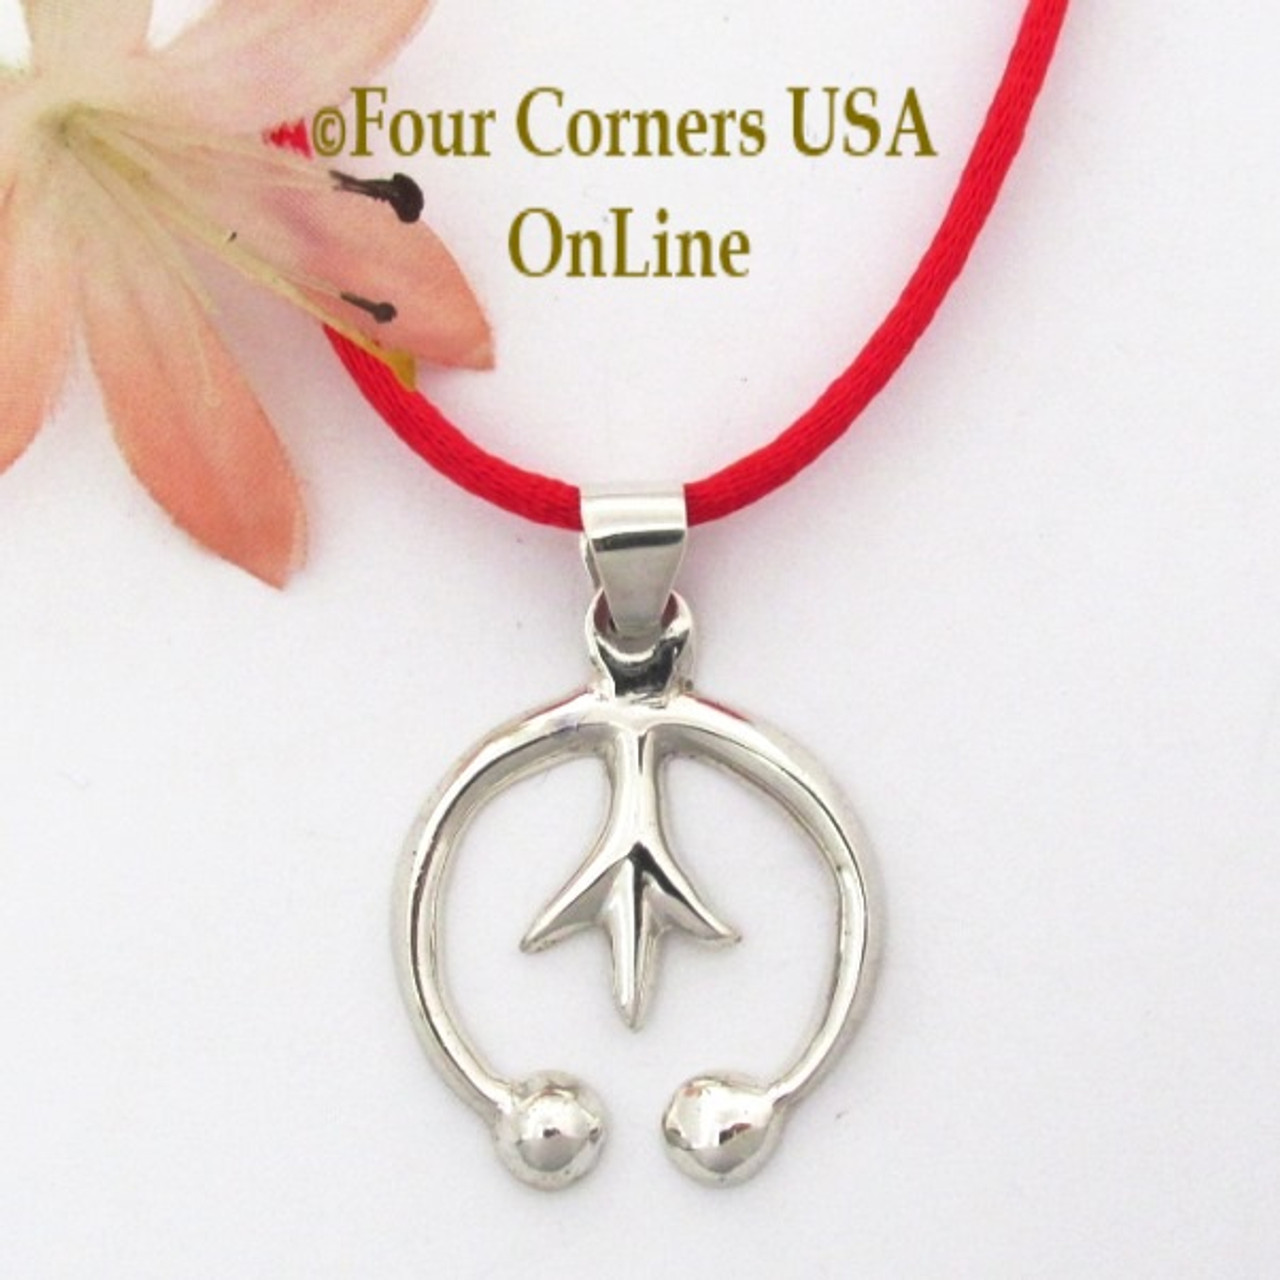 Silver naja necklace isabelle kee four corners usa online petite silver naja pendant 24 inch neckcord navajo artisan isabelle kee nap 1691 four corners aloadofball Images